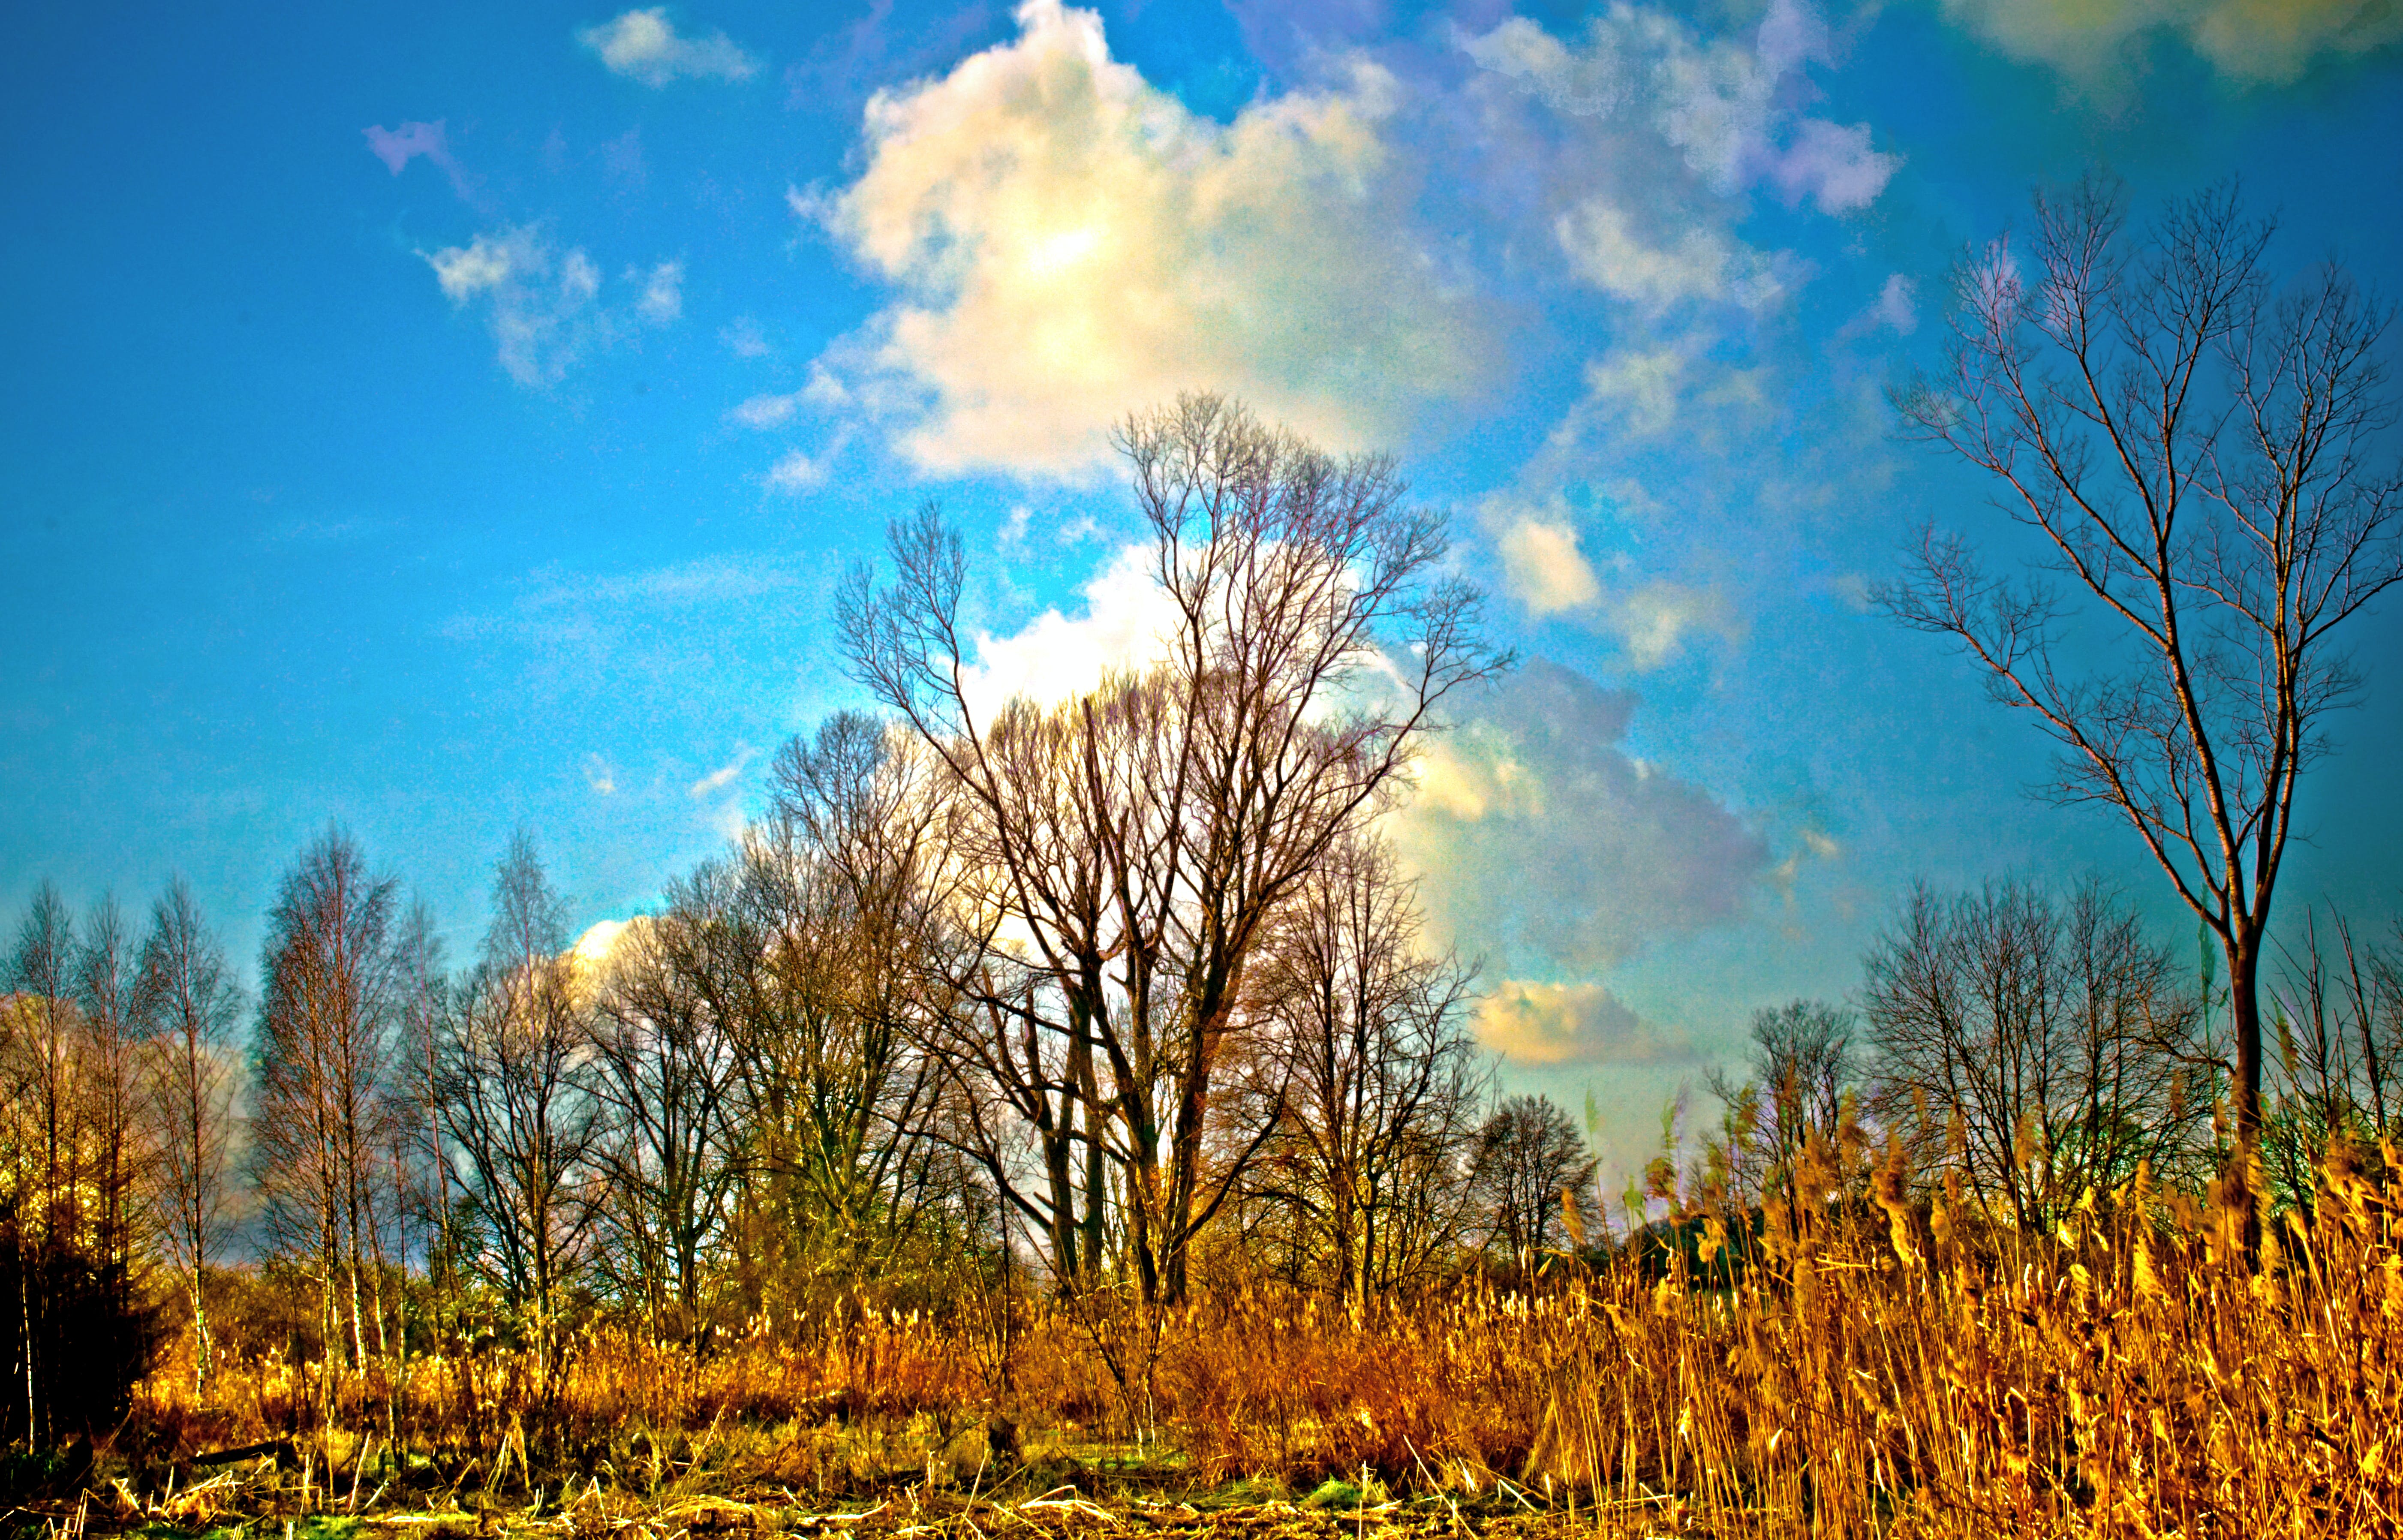 Free stock photo of tree, hdr, boggy